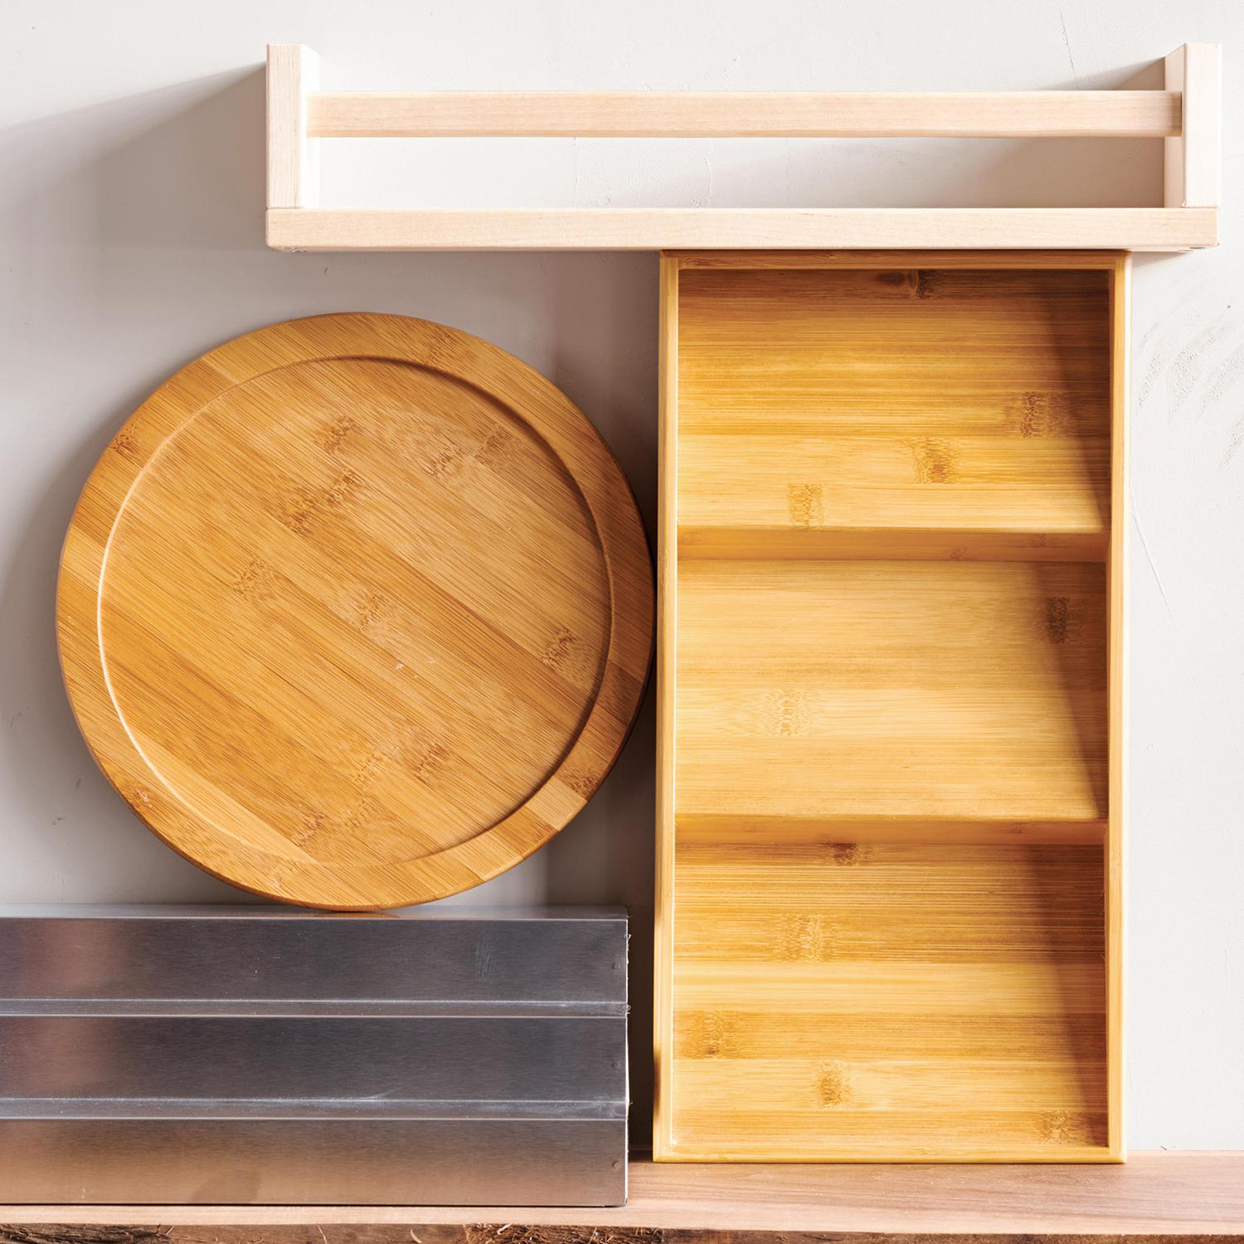 wooden and metal pantry spice racks